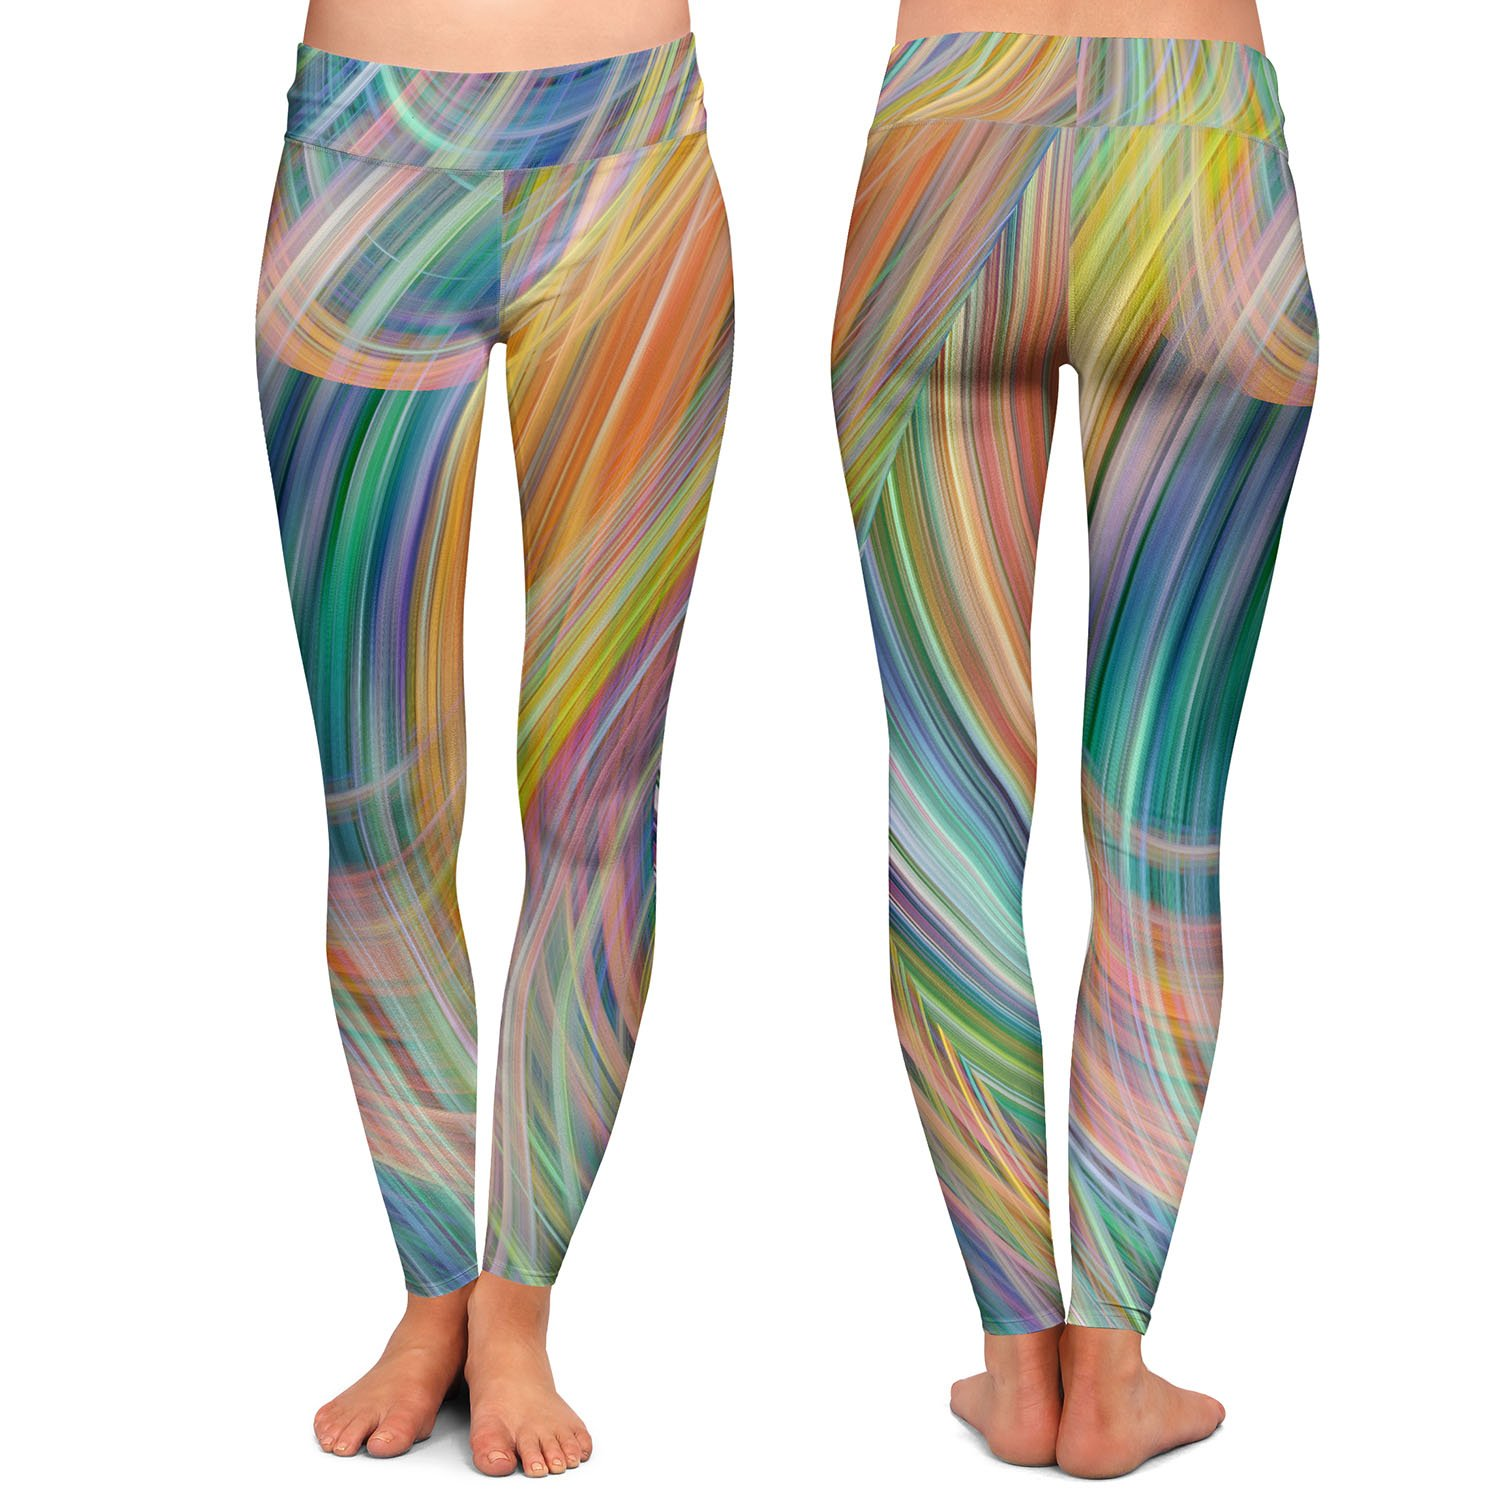 Lazy Breezy Day IV Athletic Yoga Leggings from DiaNoche Designs by Ruth Palmer